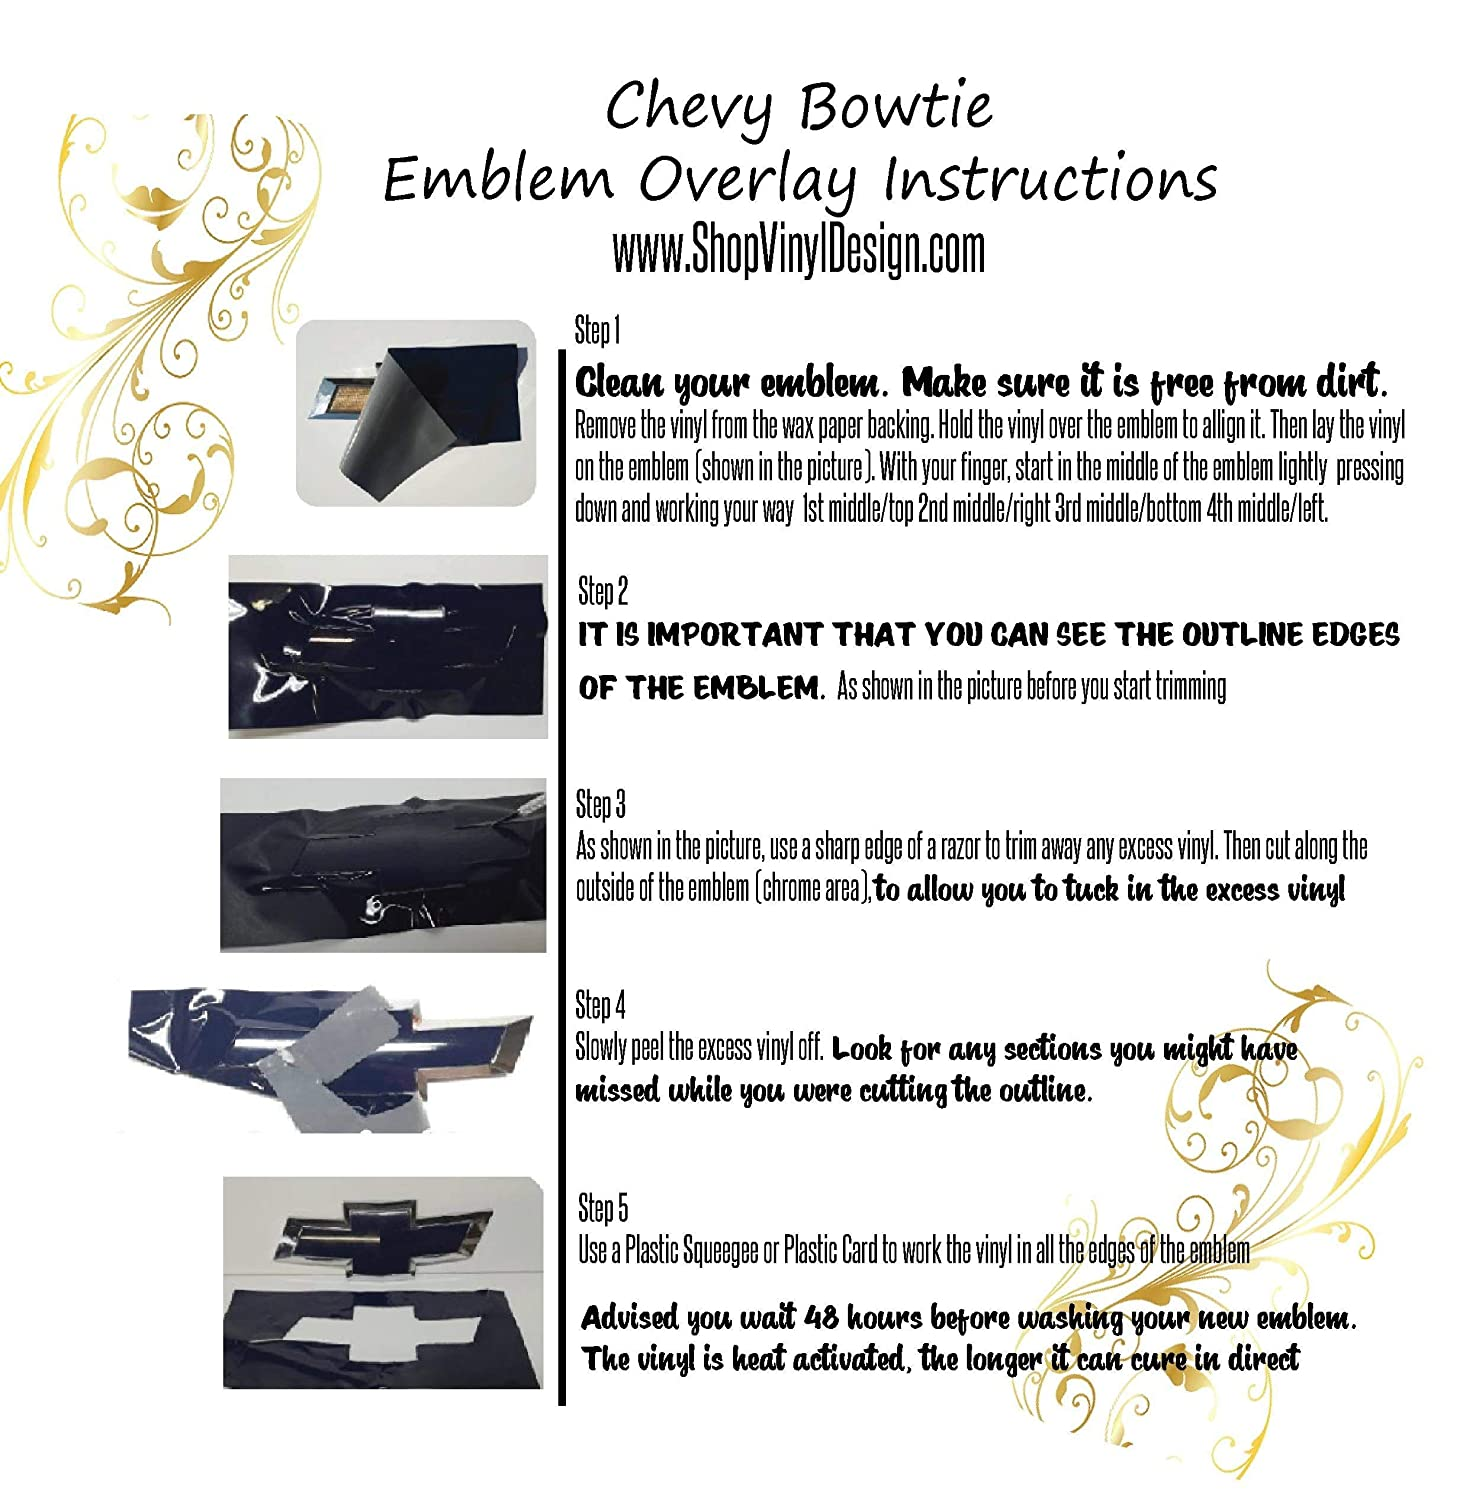 Emblem Overlay Kit DIY Extra Overlay Sheet || FREE Steering Wheel Kit Included Compatible with Chevy Bowtie SILVER METALLIC Silverado Colorado Suburban 1500 S10 Tahoe Camero and More 7